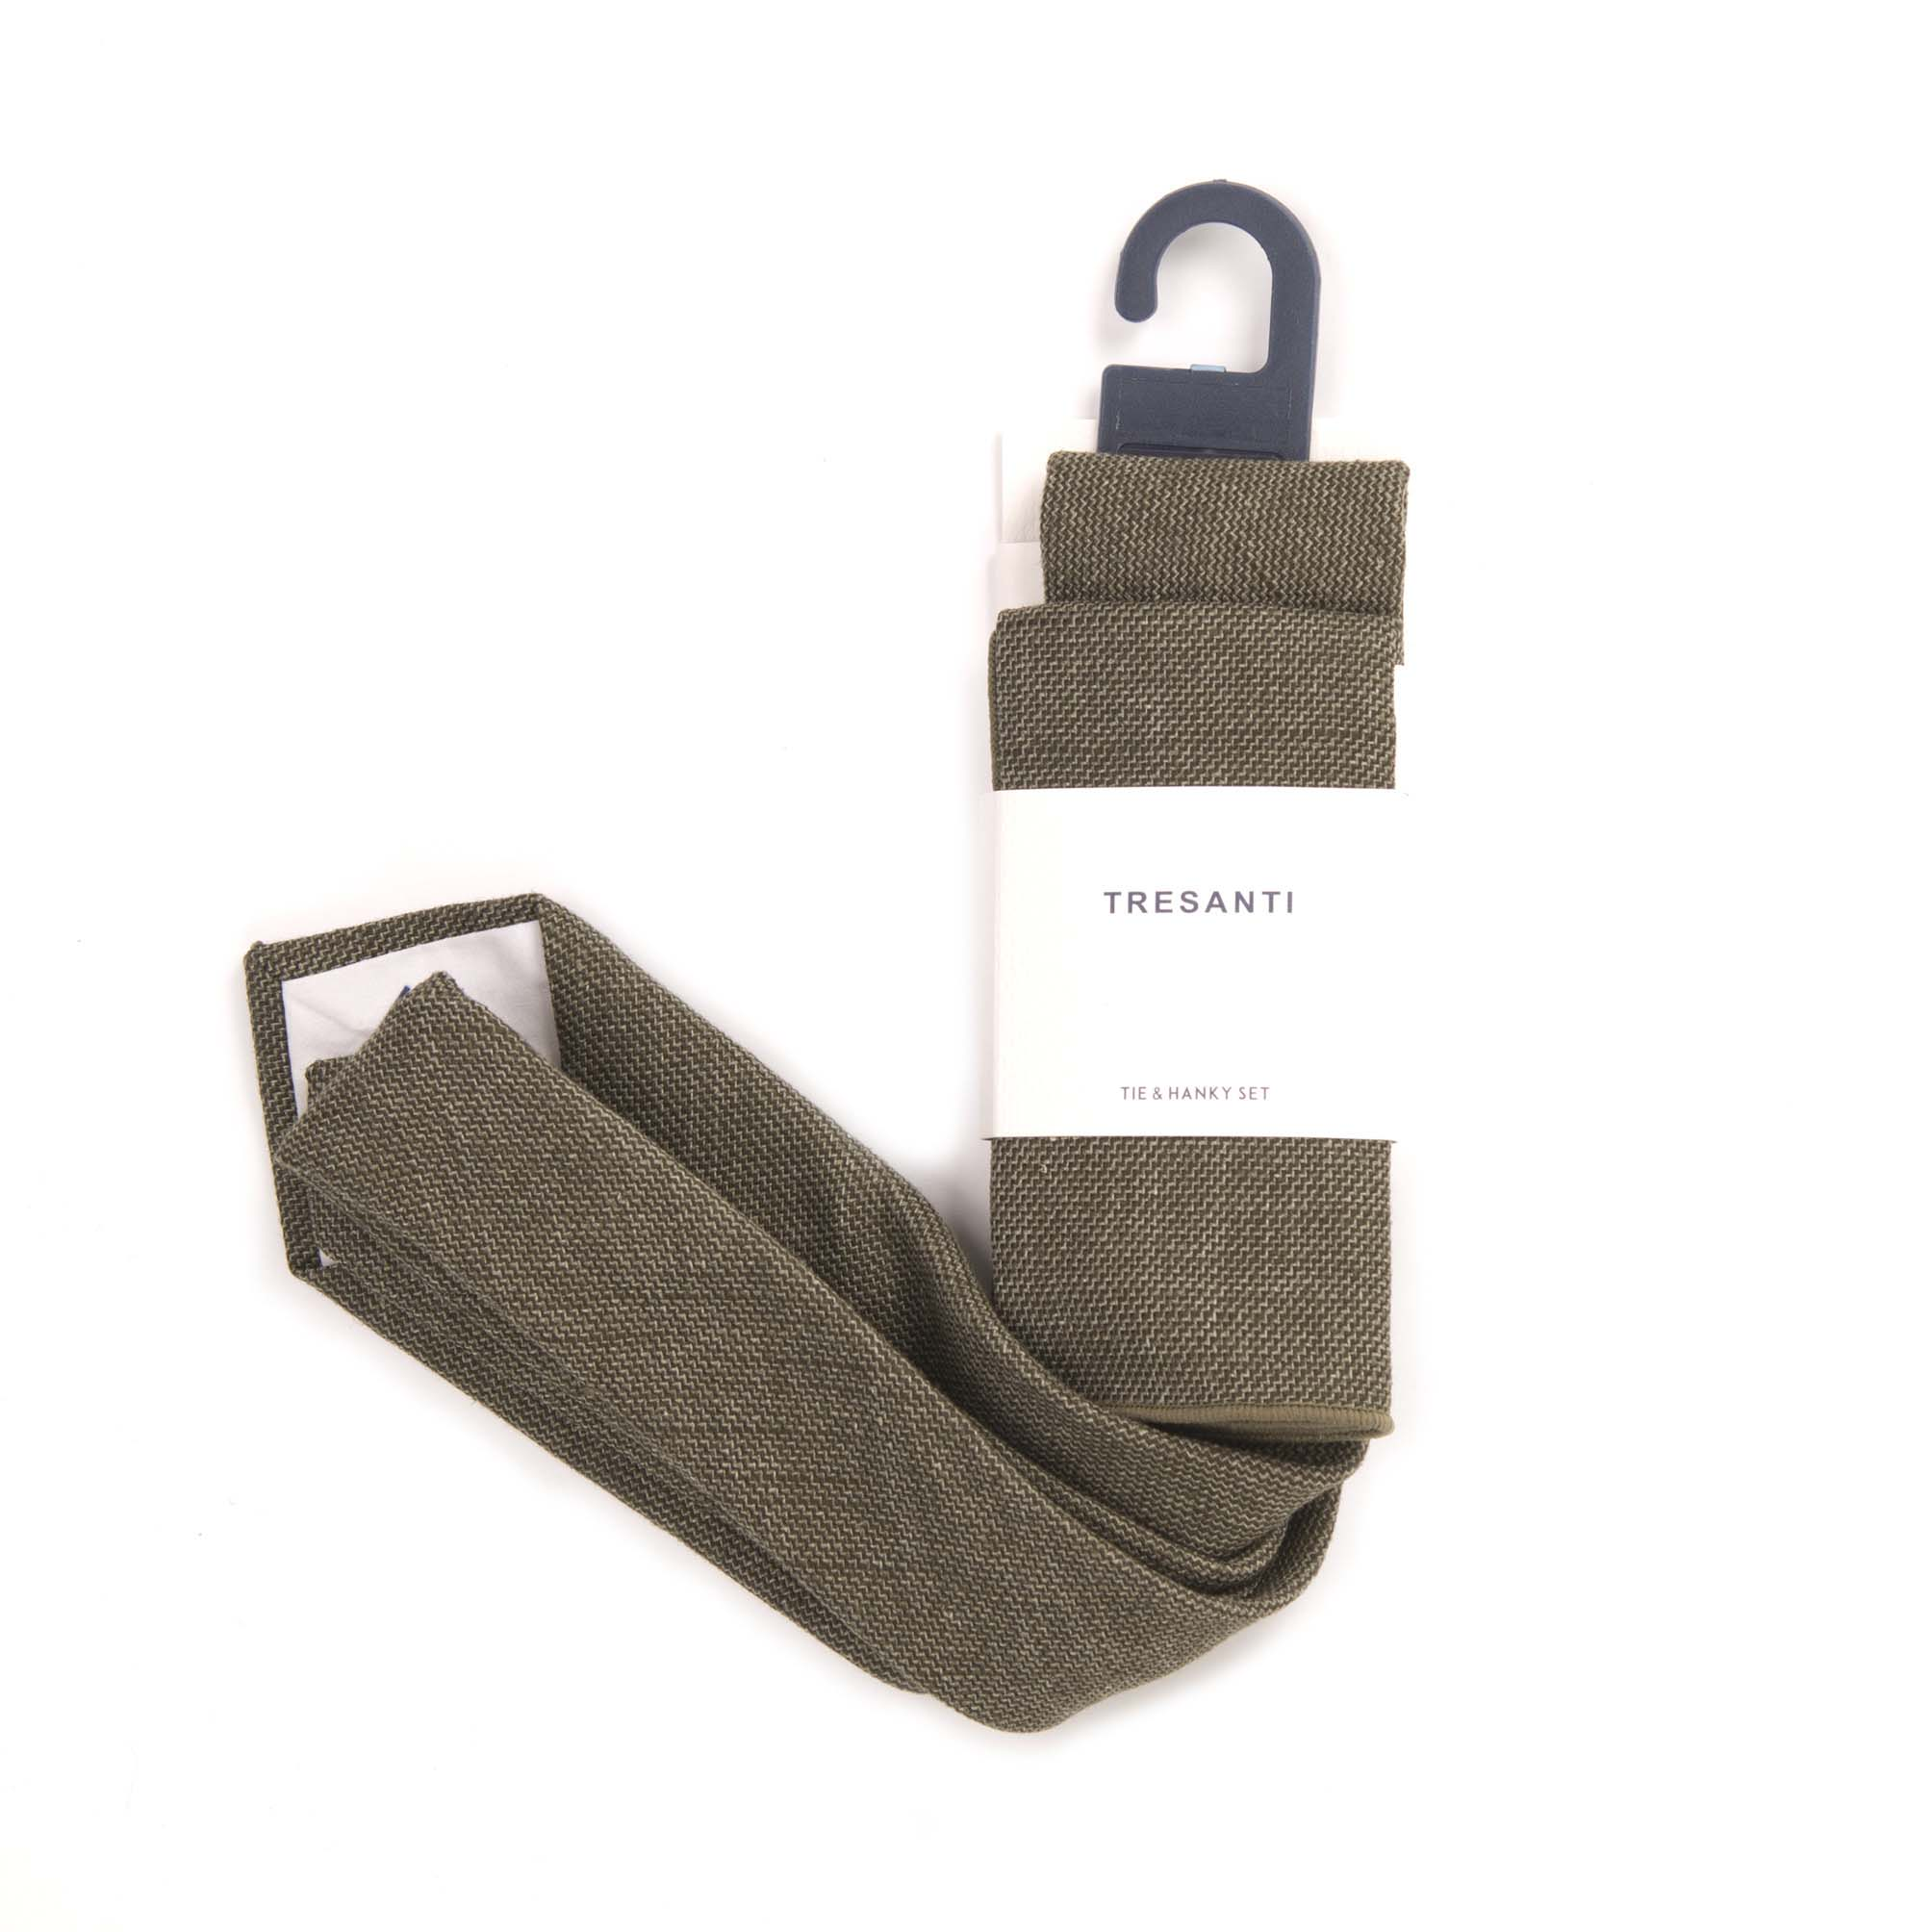 Tie & hanky army green